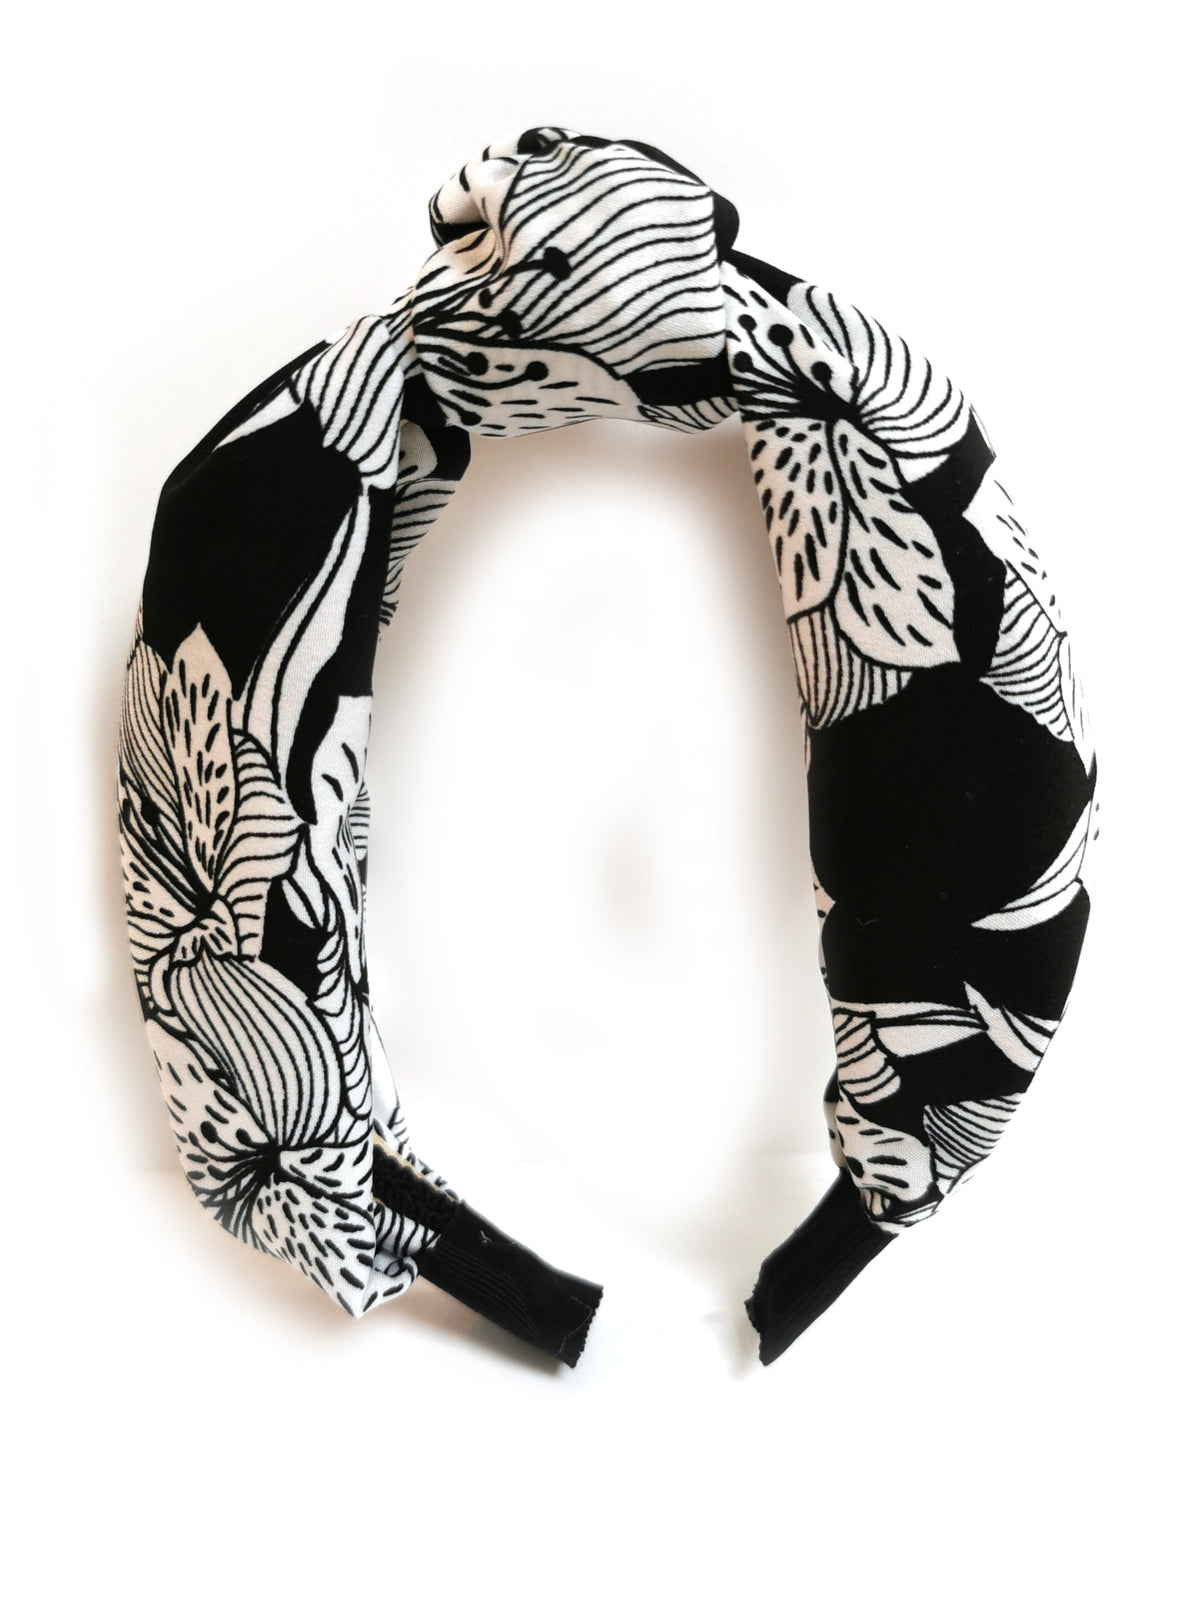 Black & White floral knot top headband